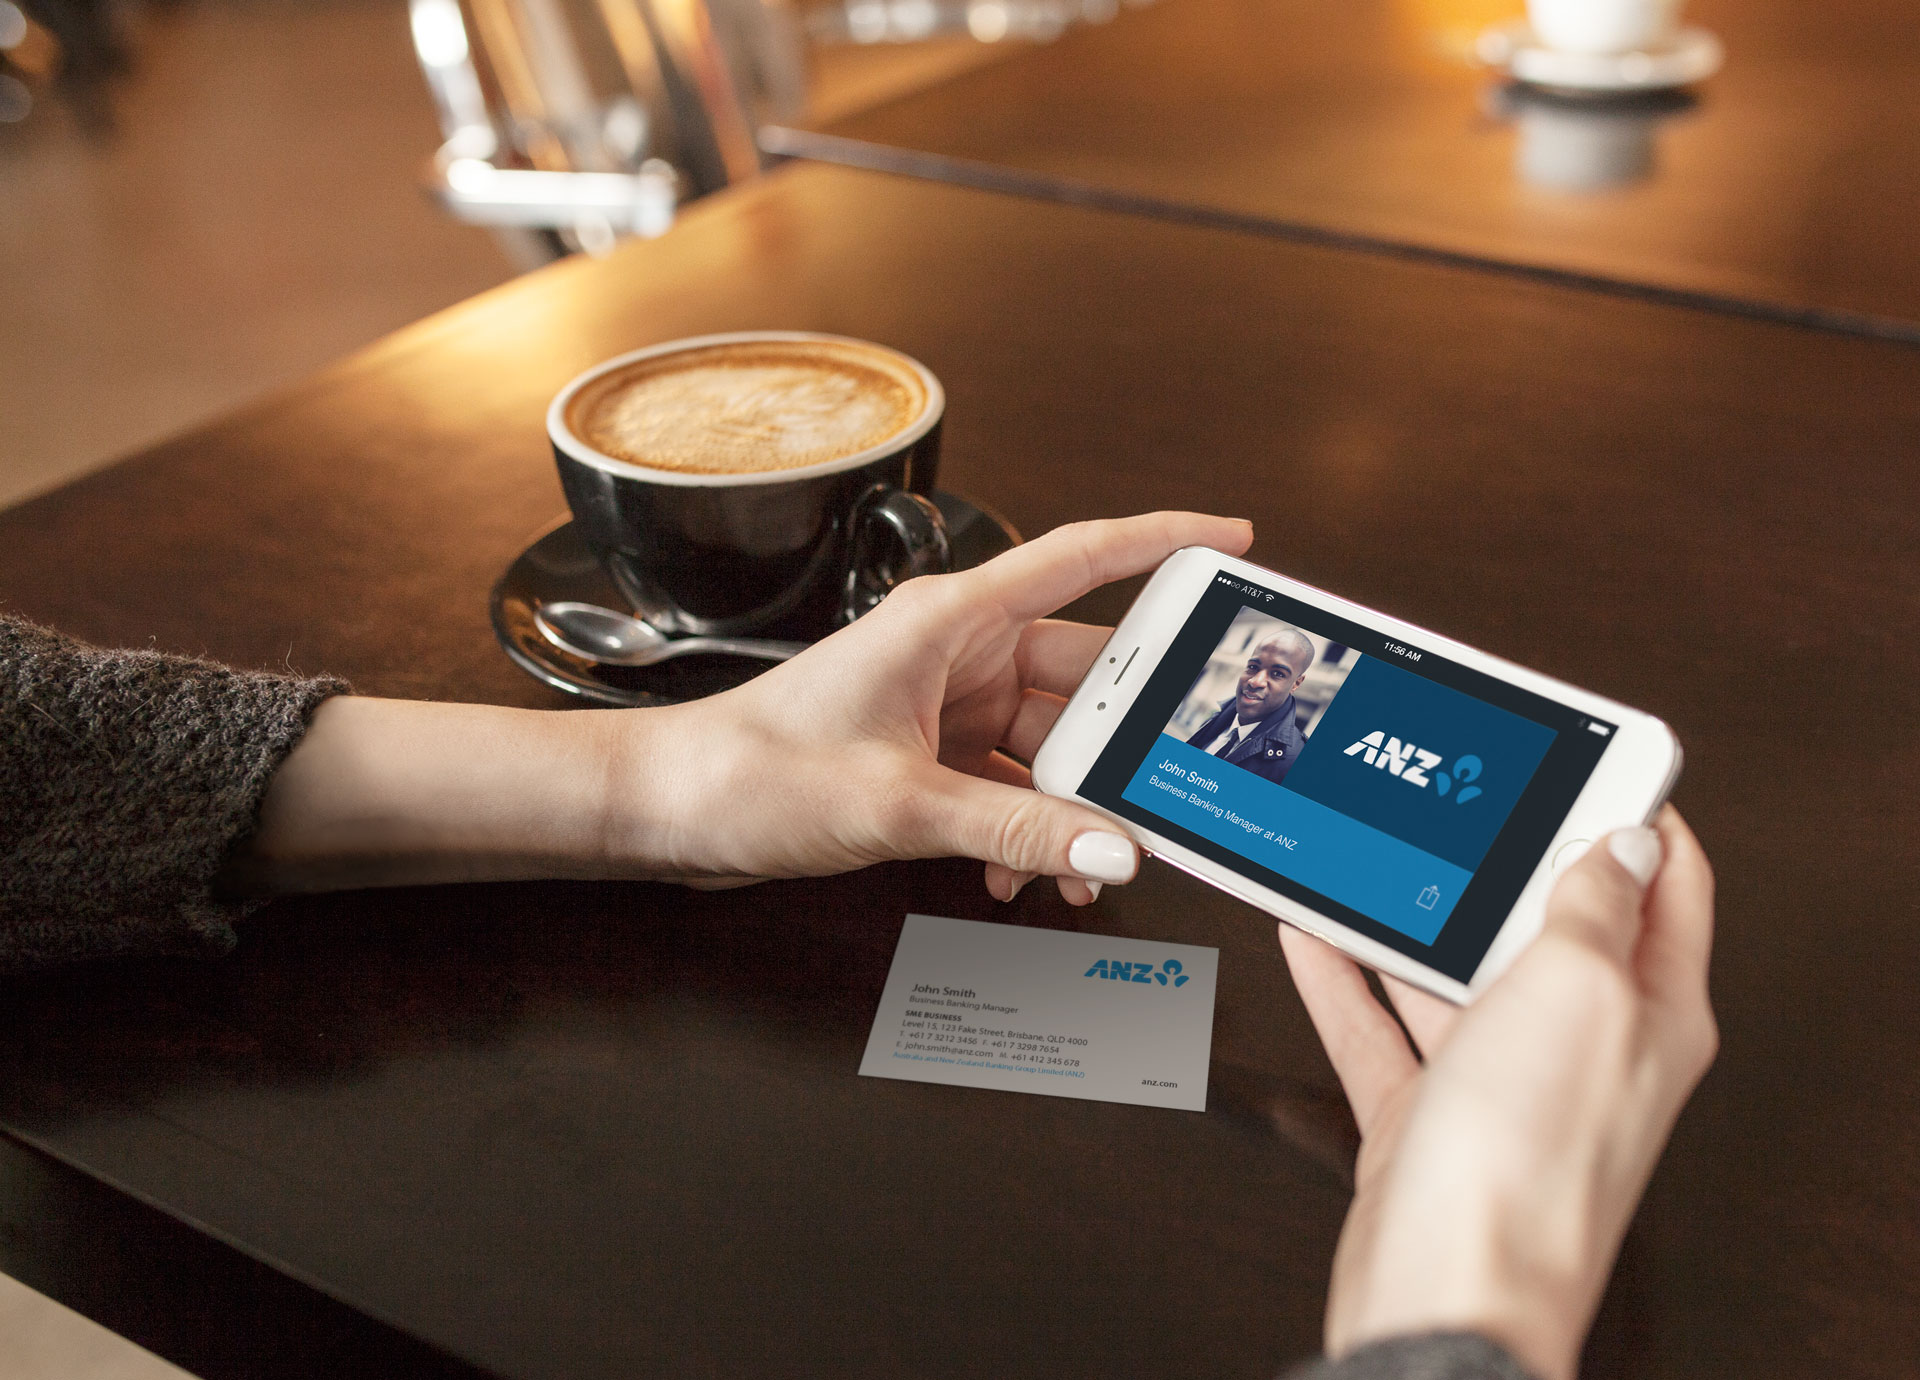 Digitally store business cards on your phone | Web Design Gold Coast ...